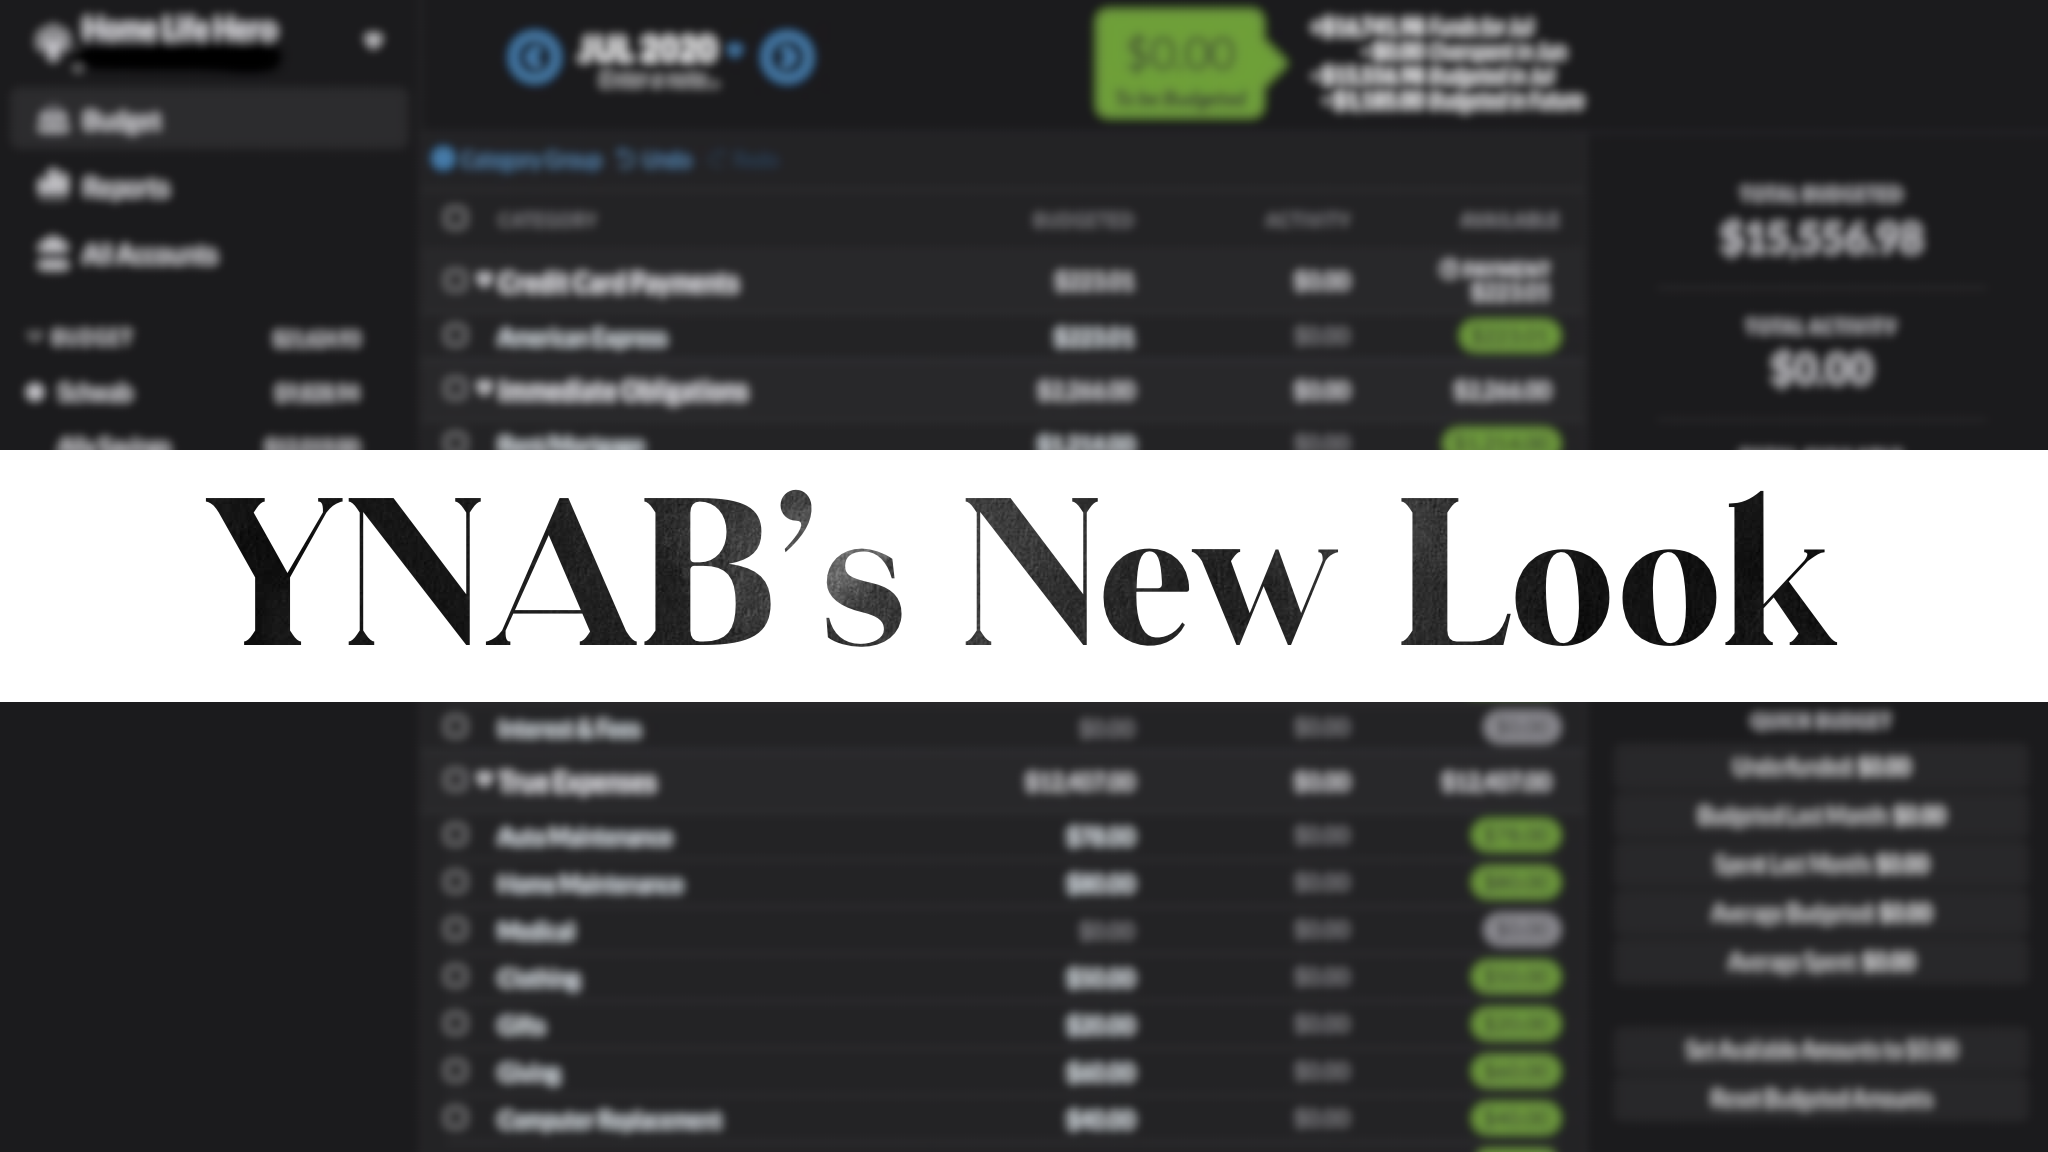 YNAB's New Look